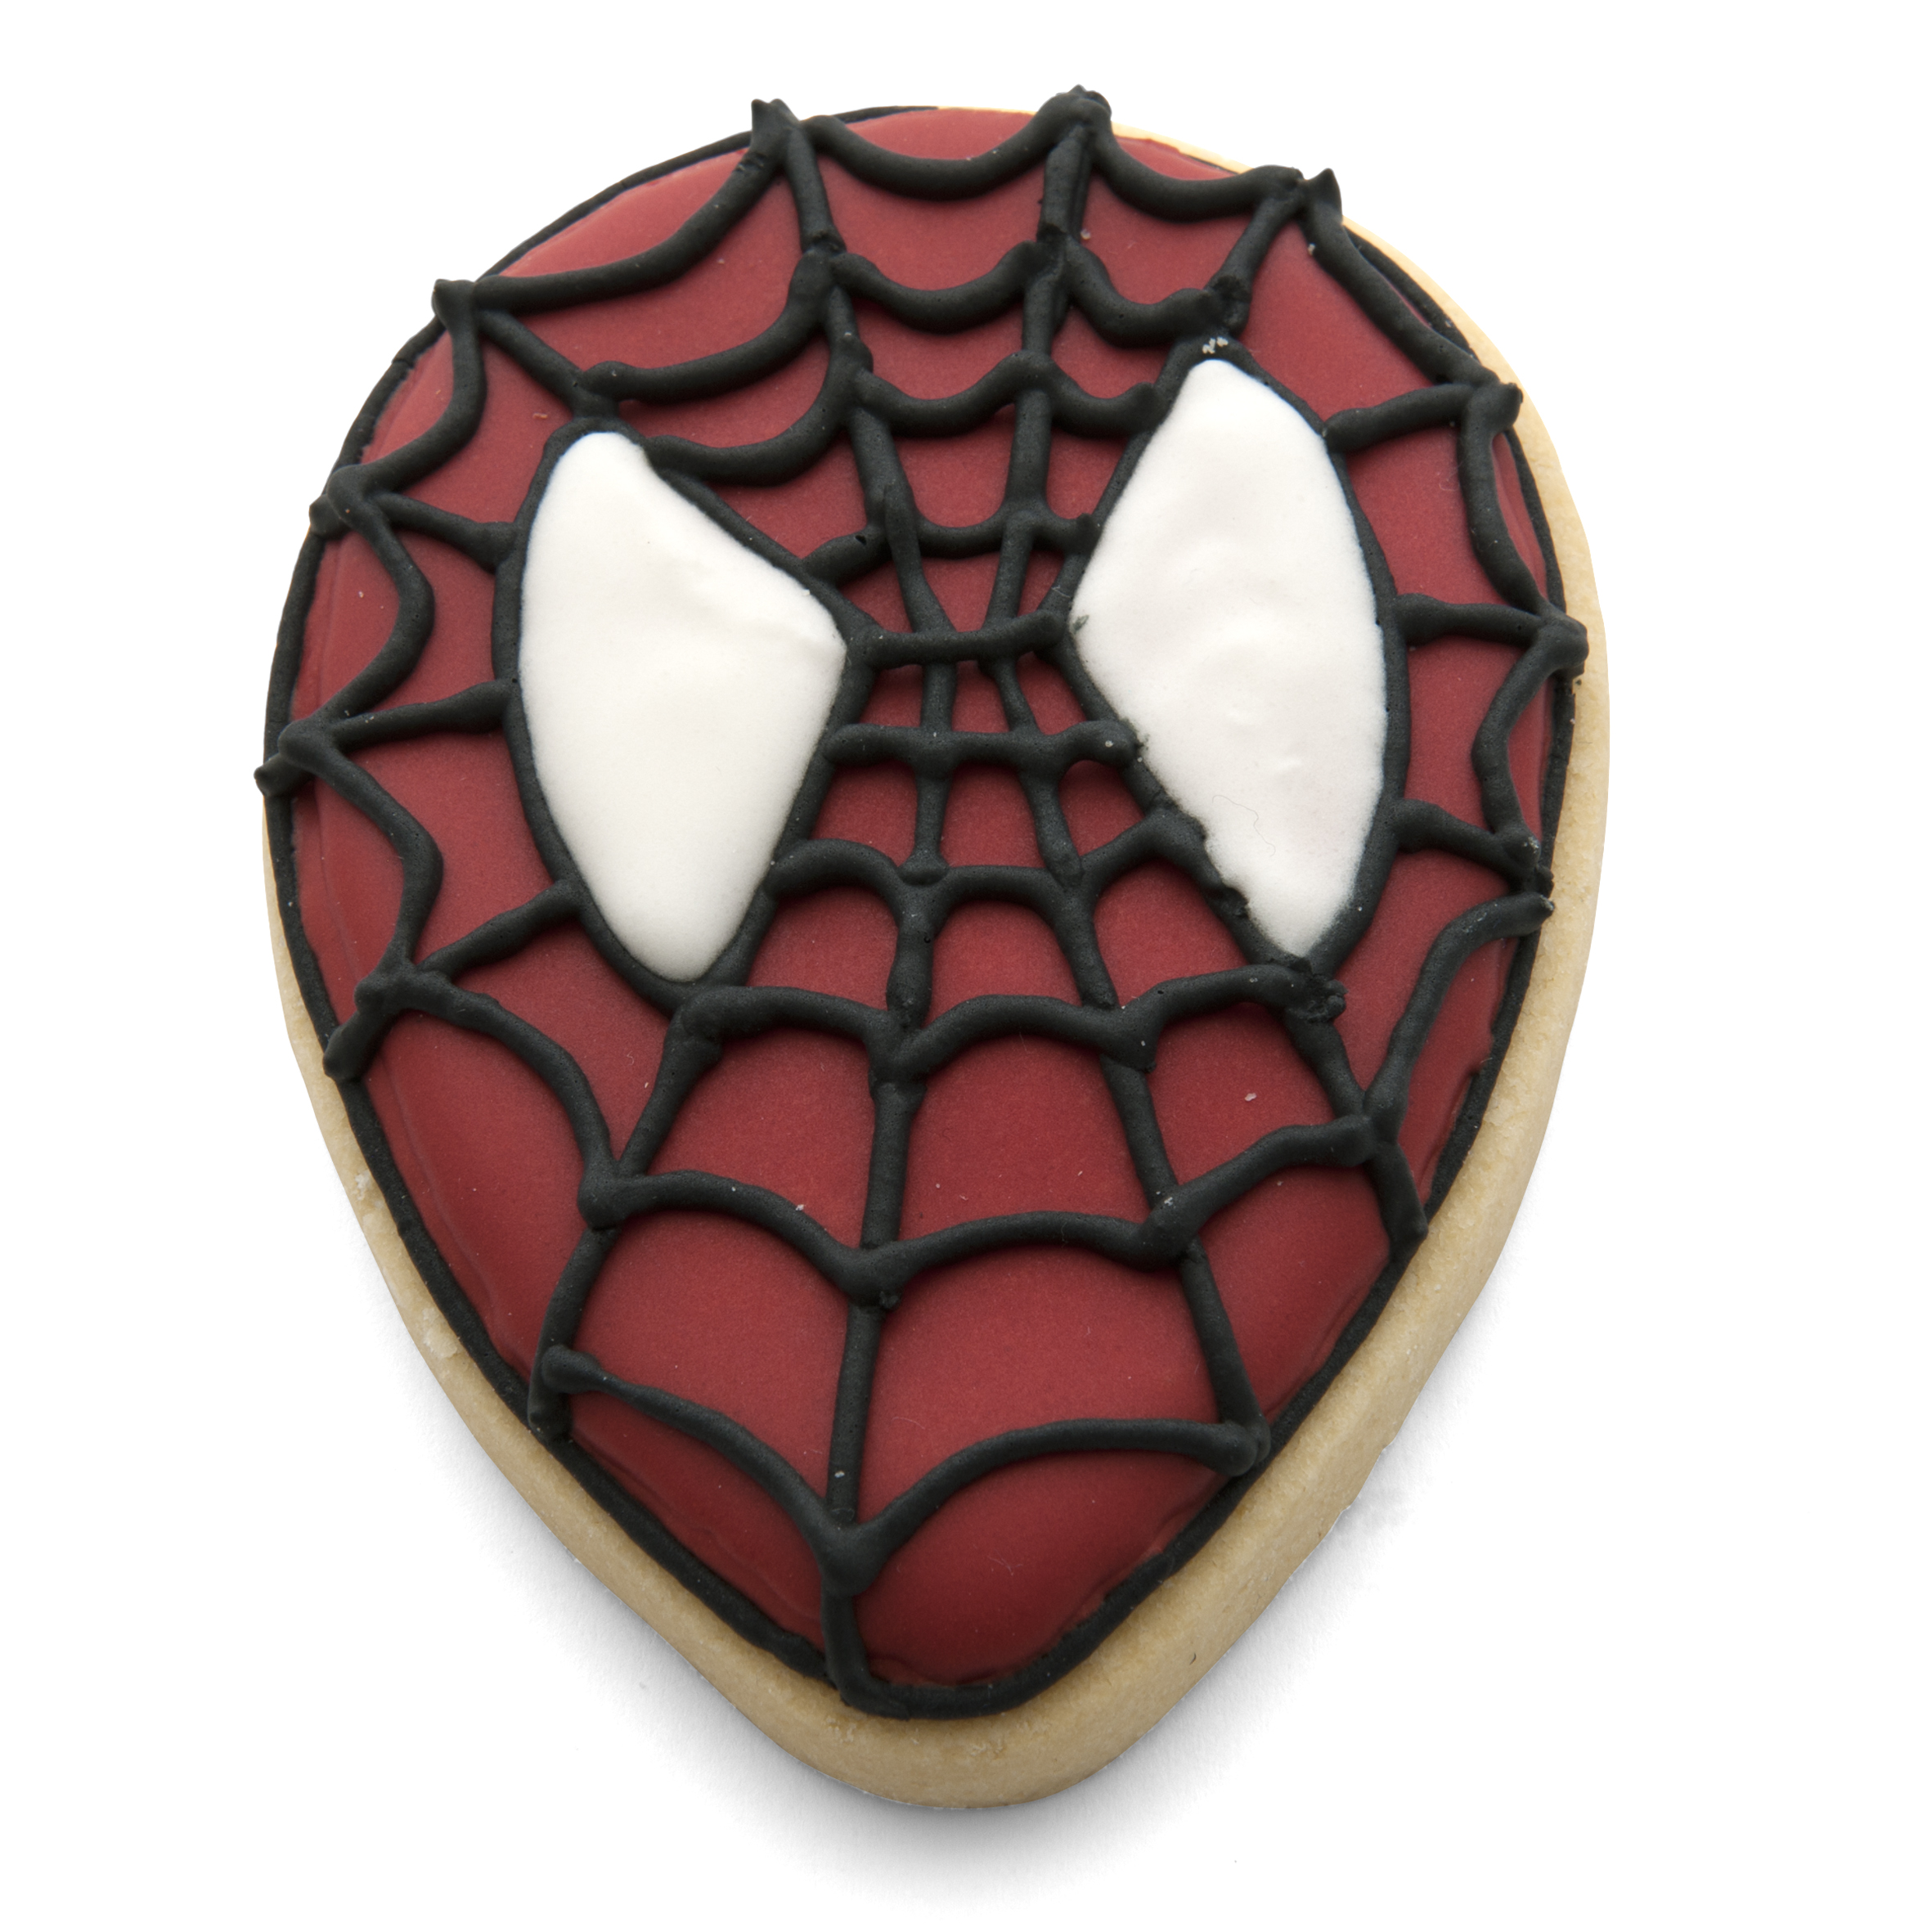 Spiderman face cookie cutter set